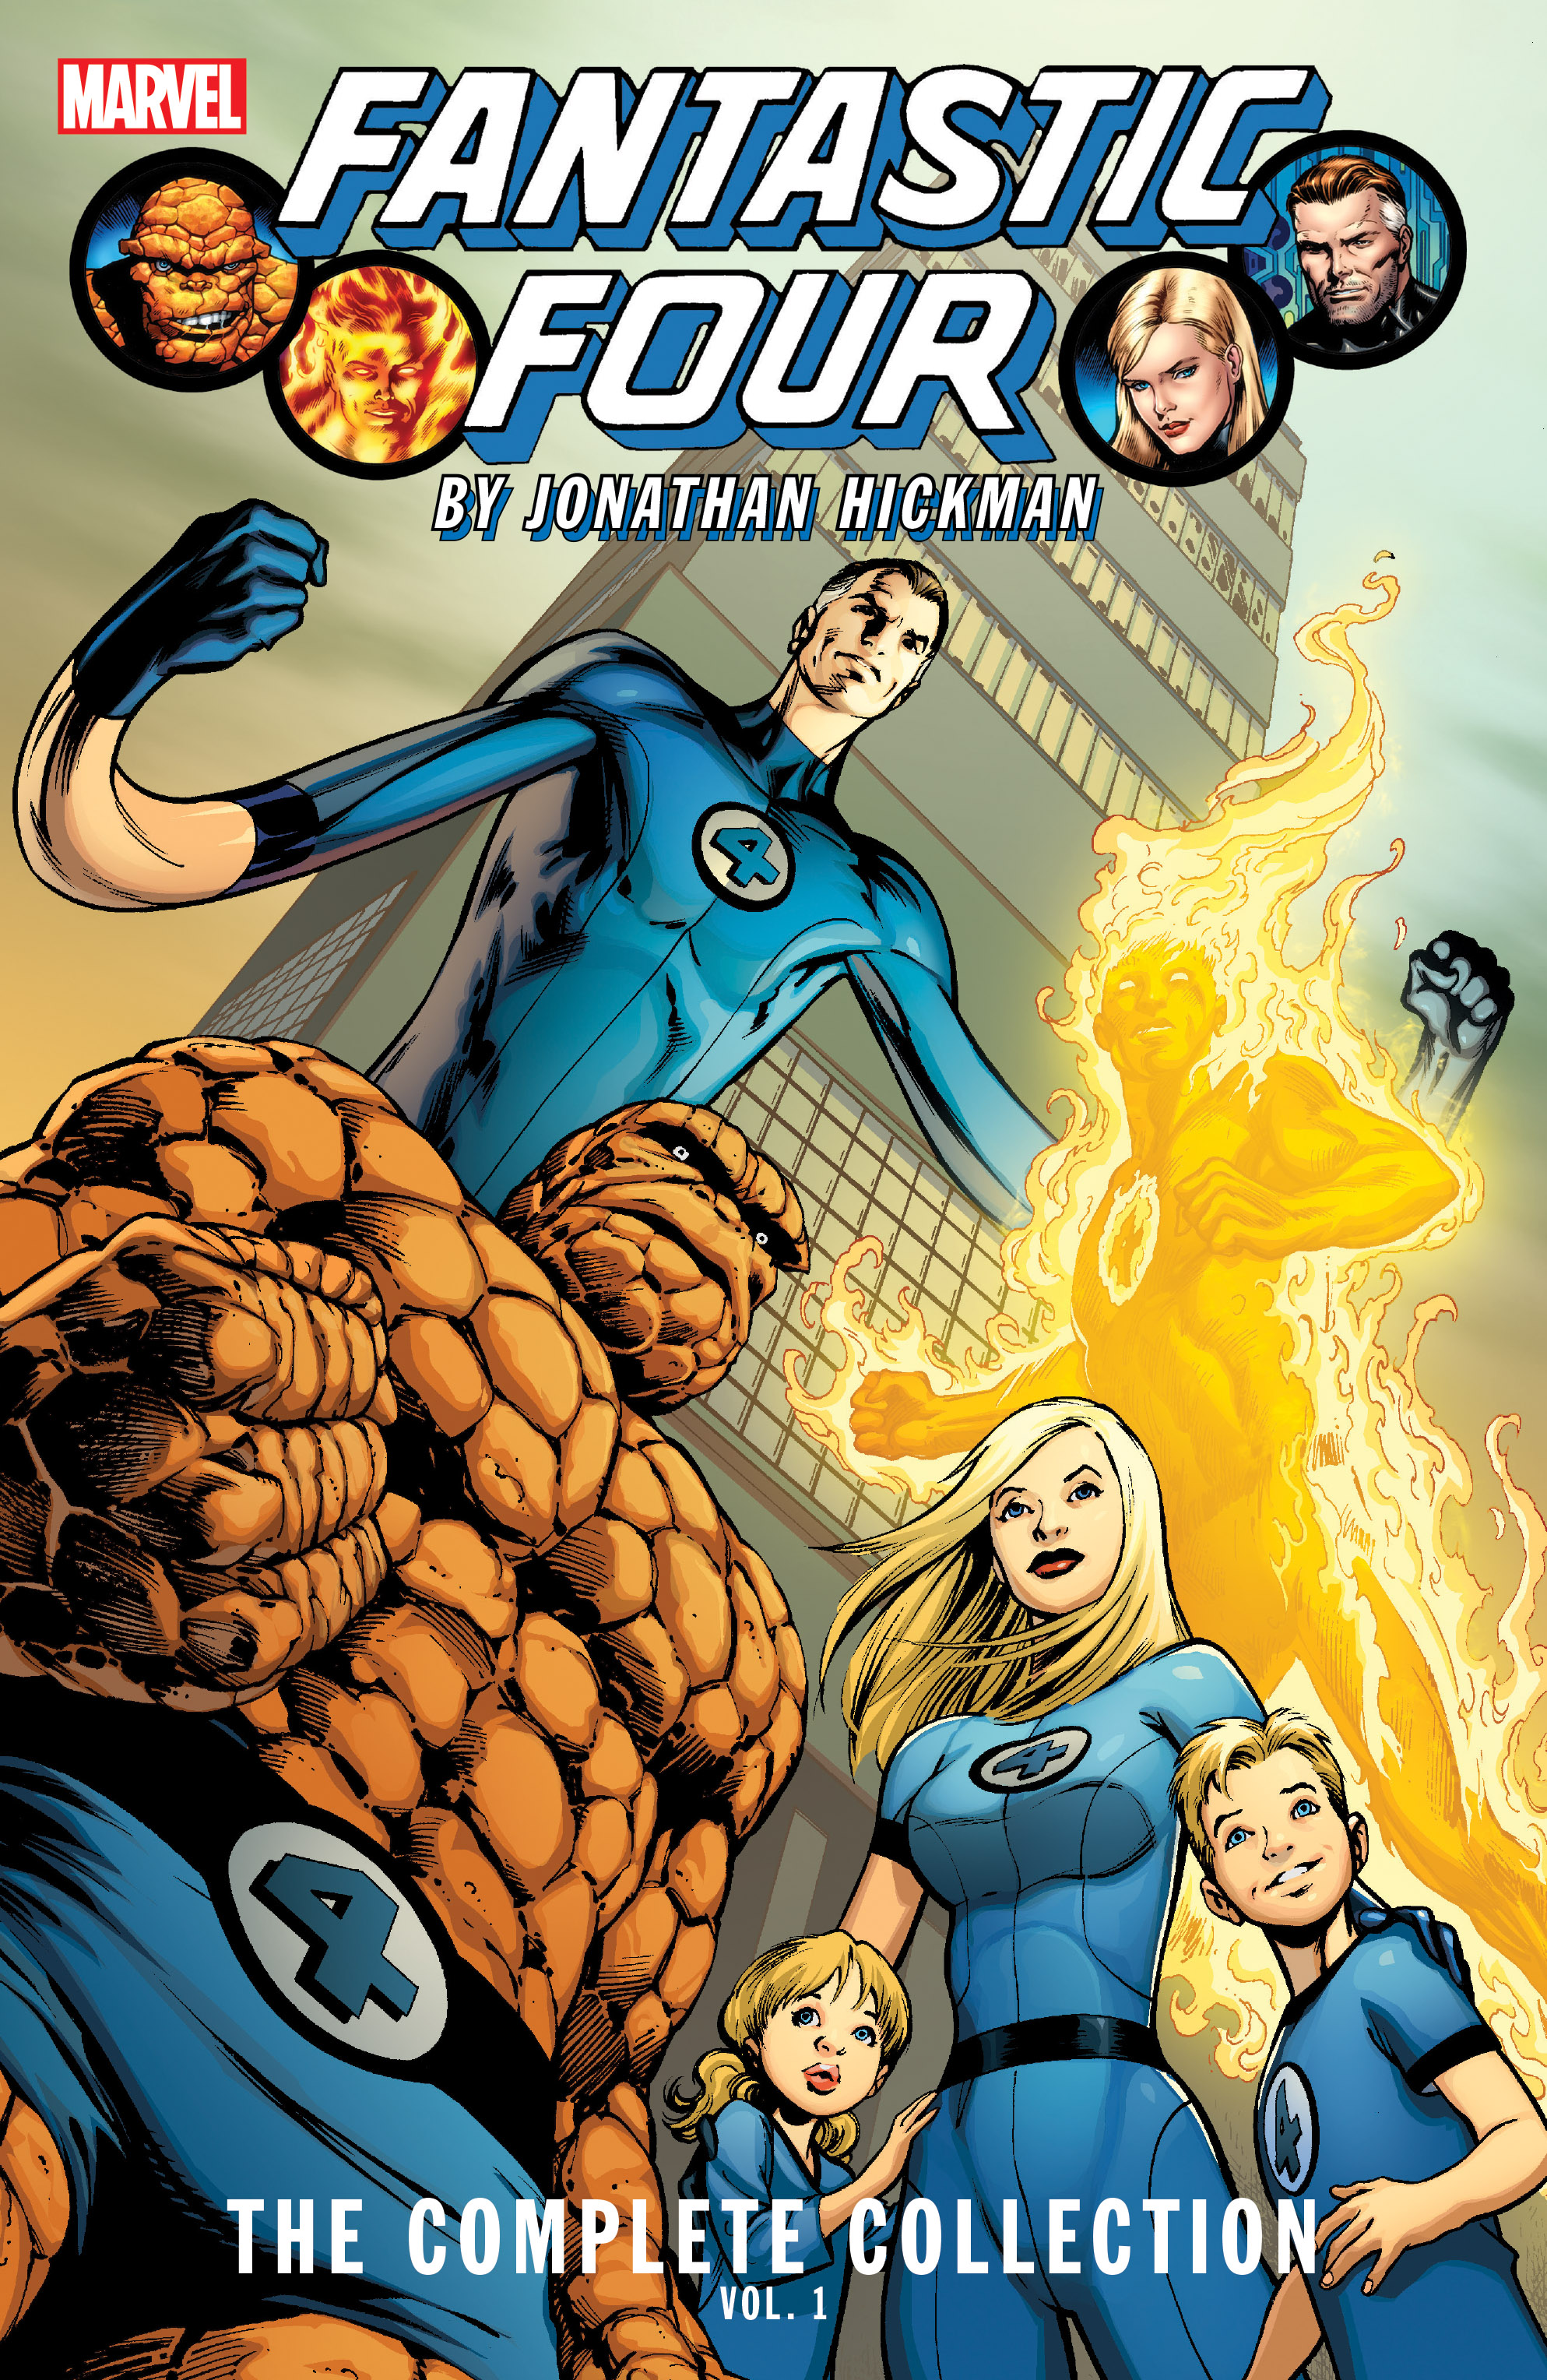 Fantastic Four by Jonathan Hickman: The Complete Collection Vol. 1 (Trade Paperback)